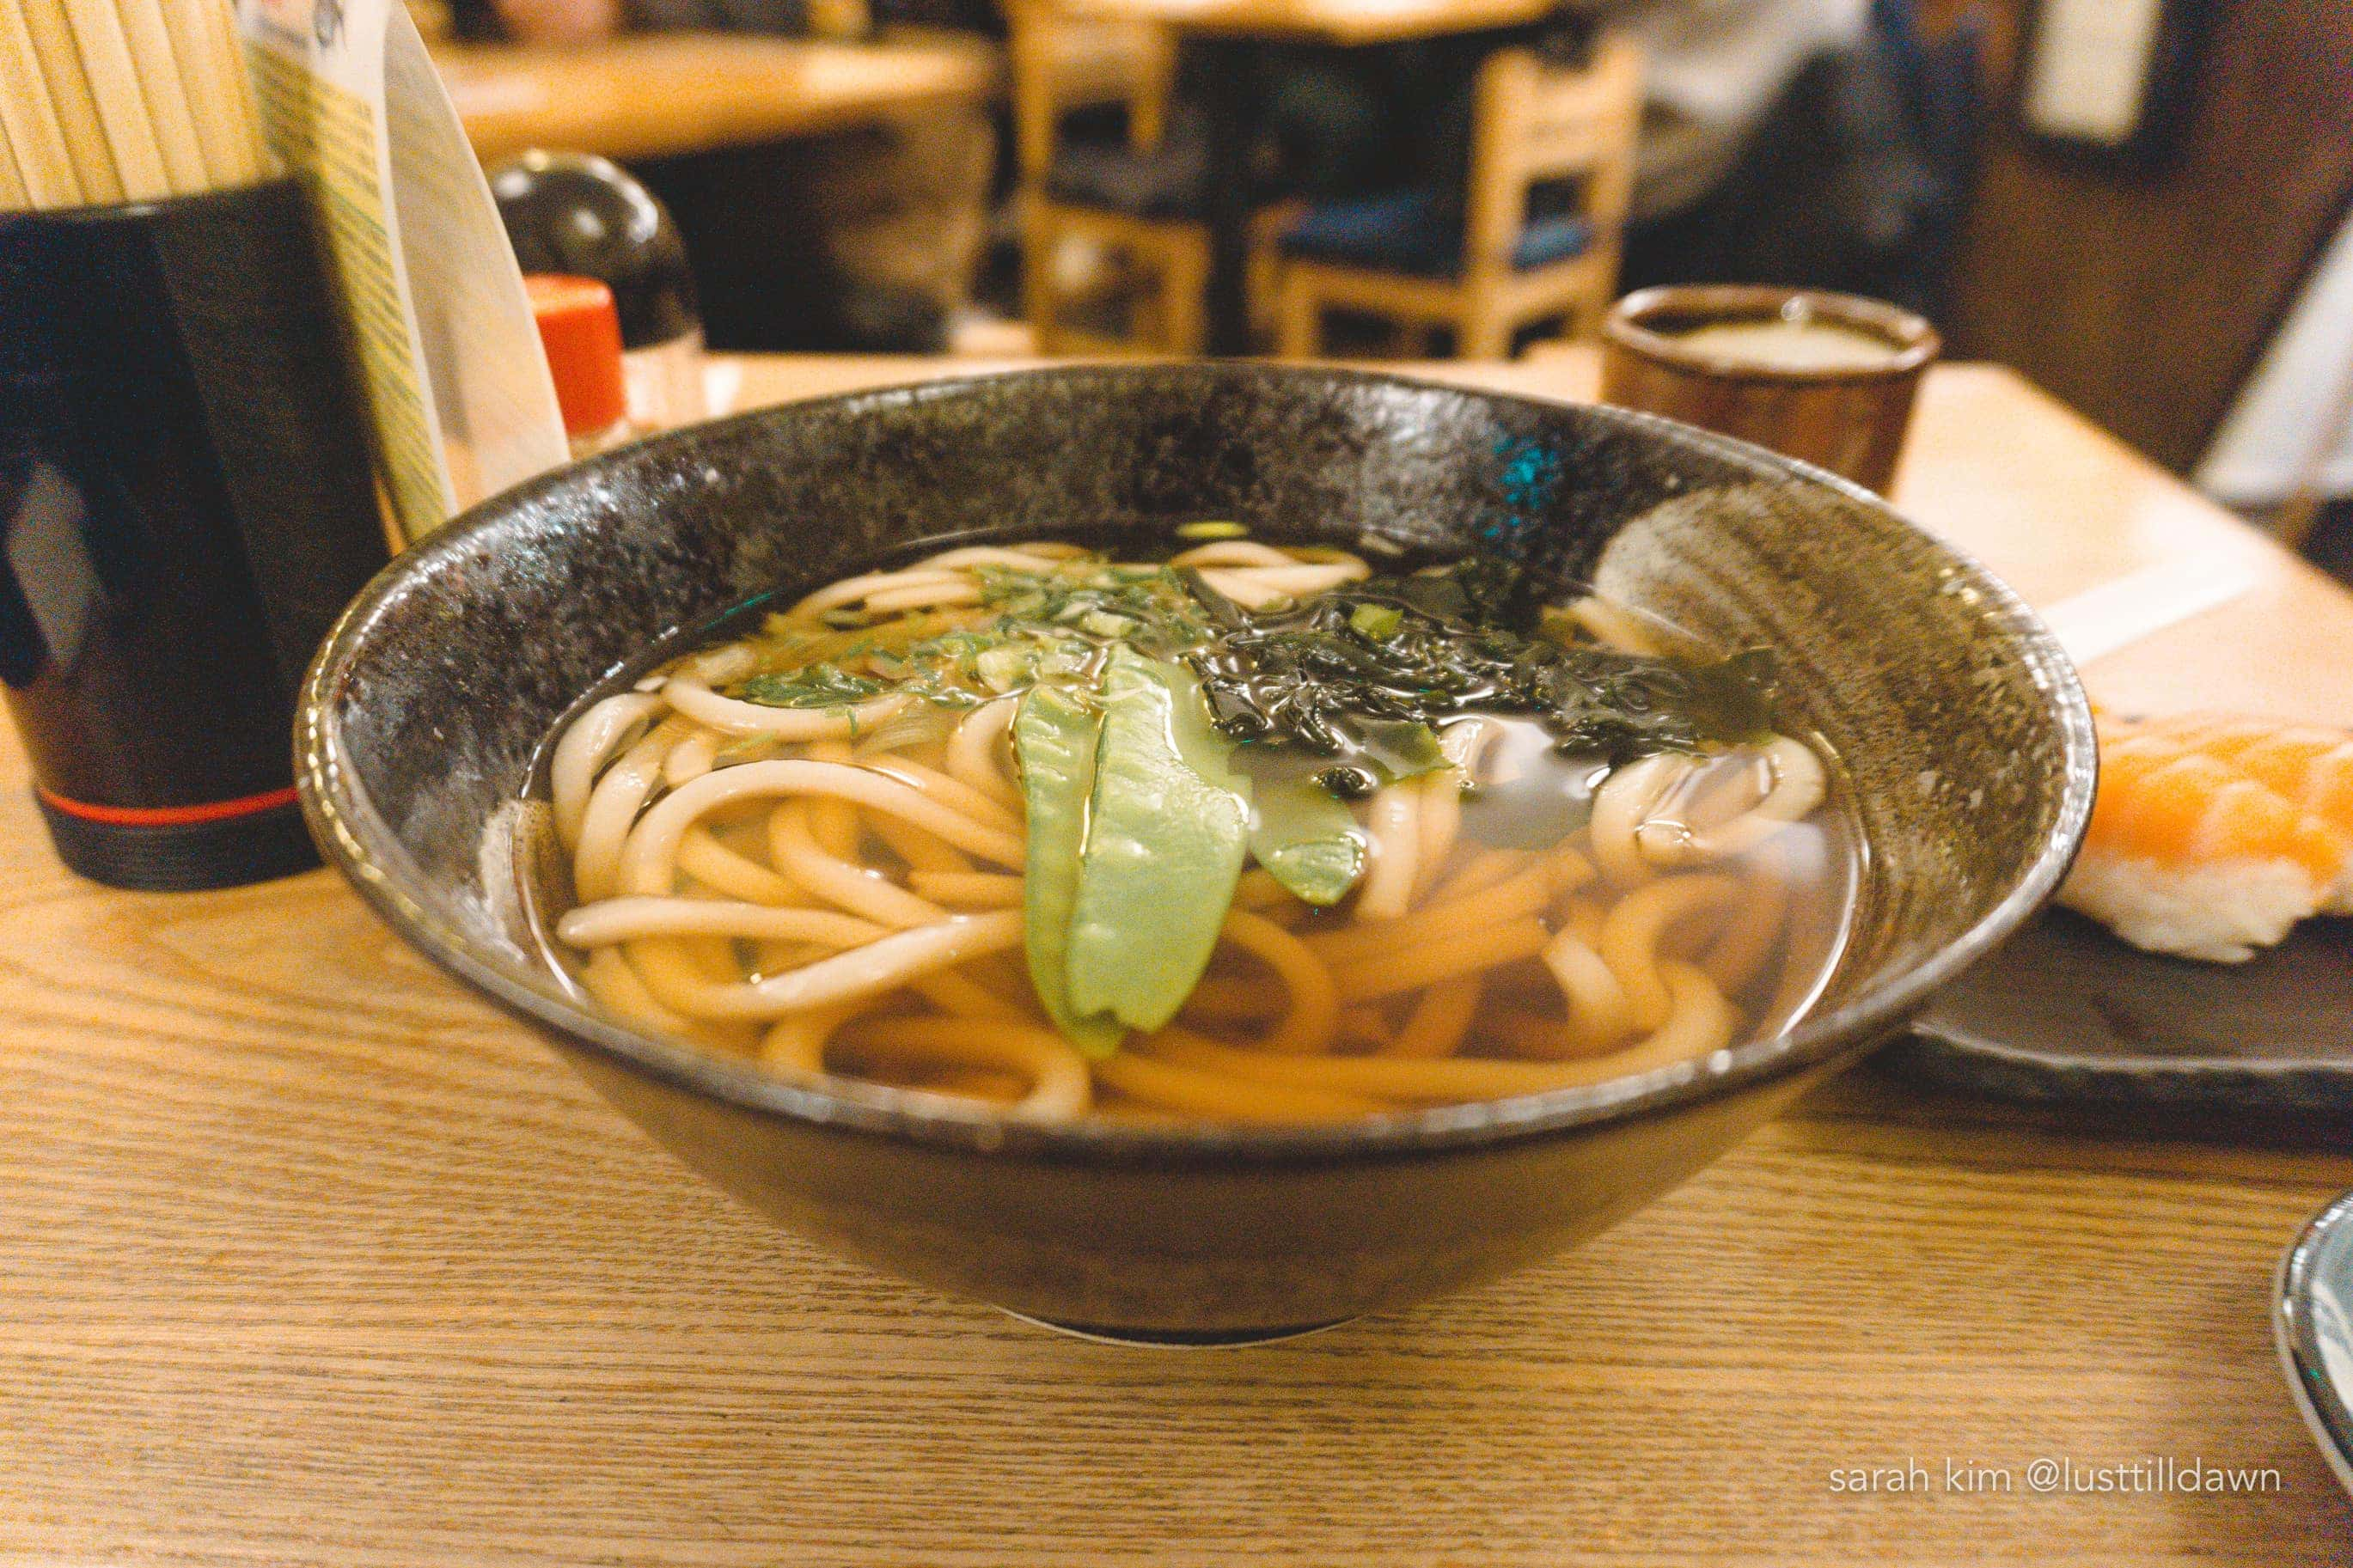 restaurants in soho london best restaurants in soho london tokyo diner www.fromlusttilldawn.com lust till dawn udon noodle soup japanese food